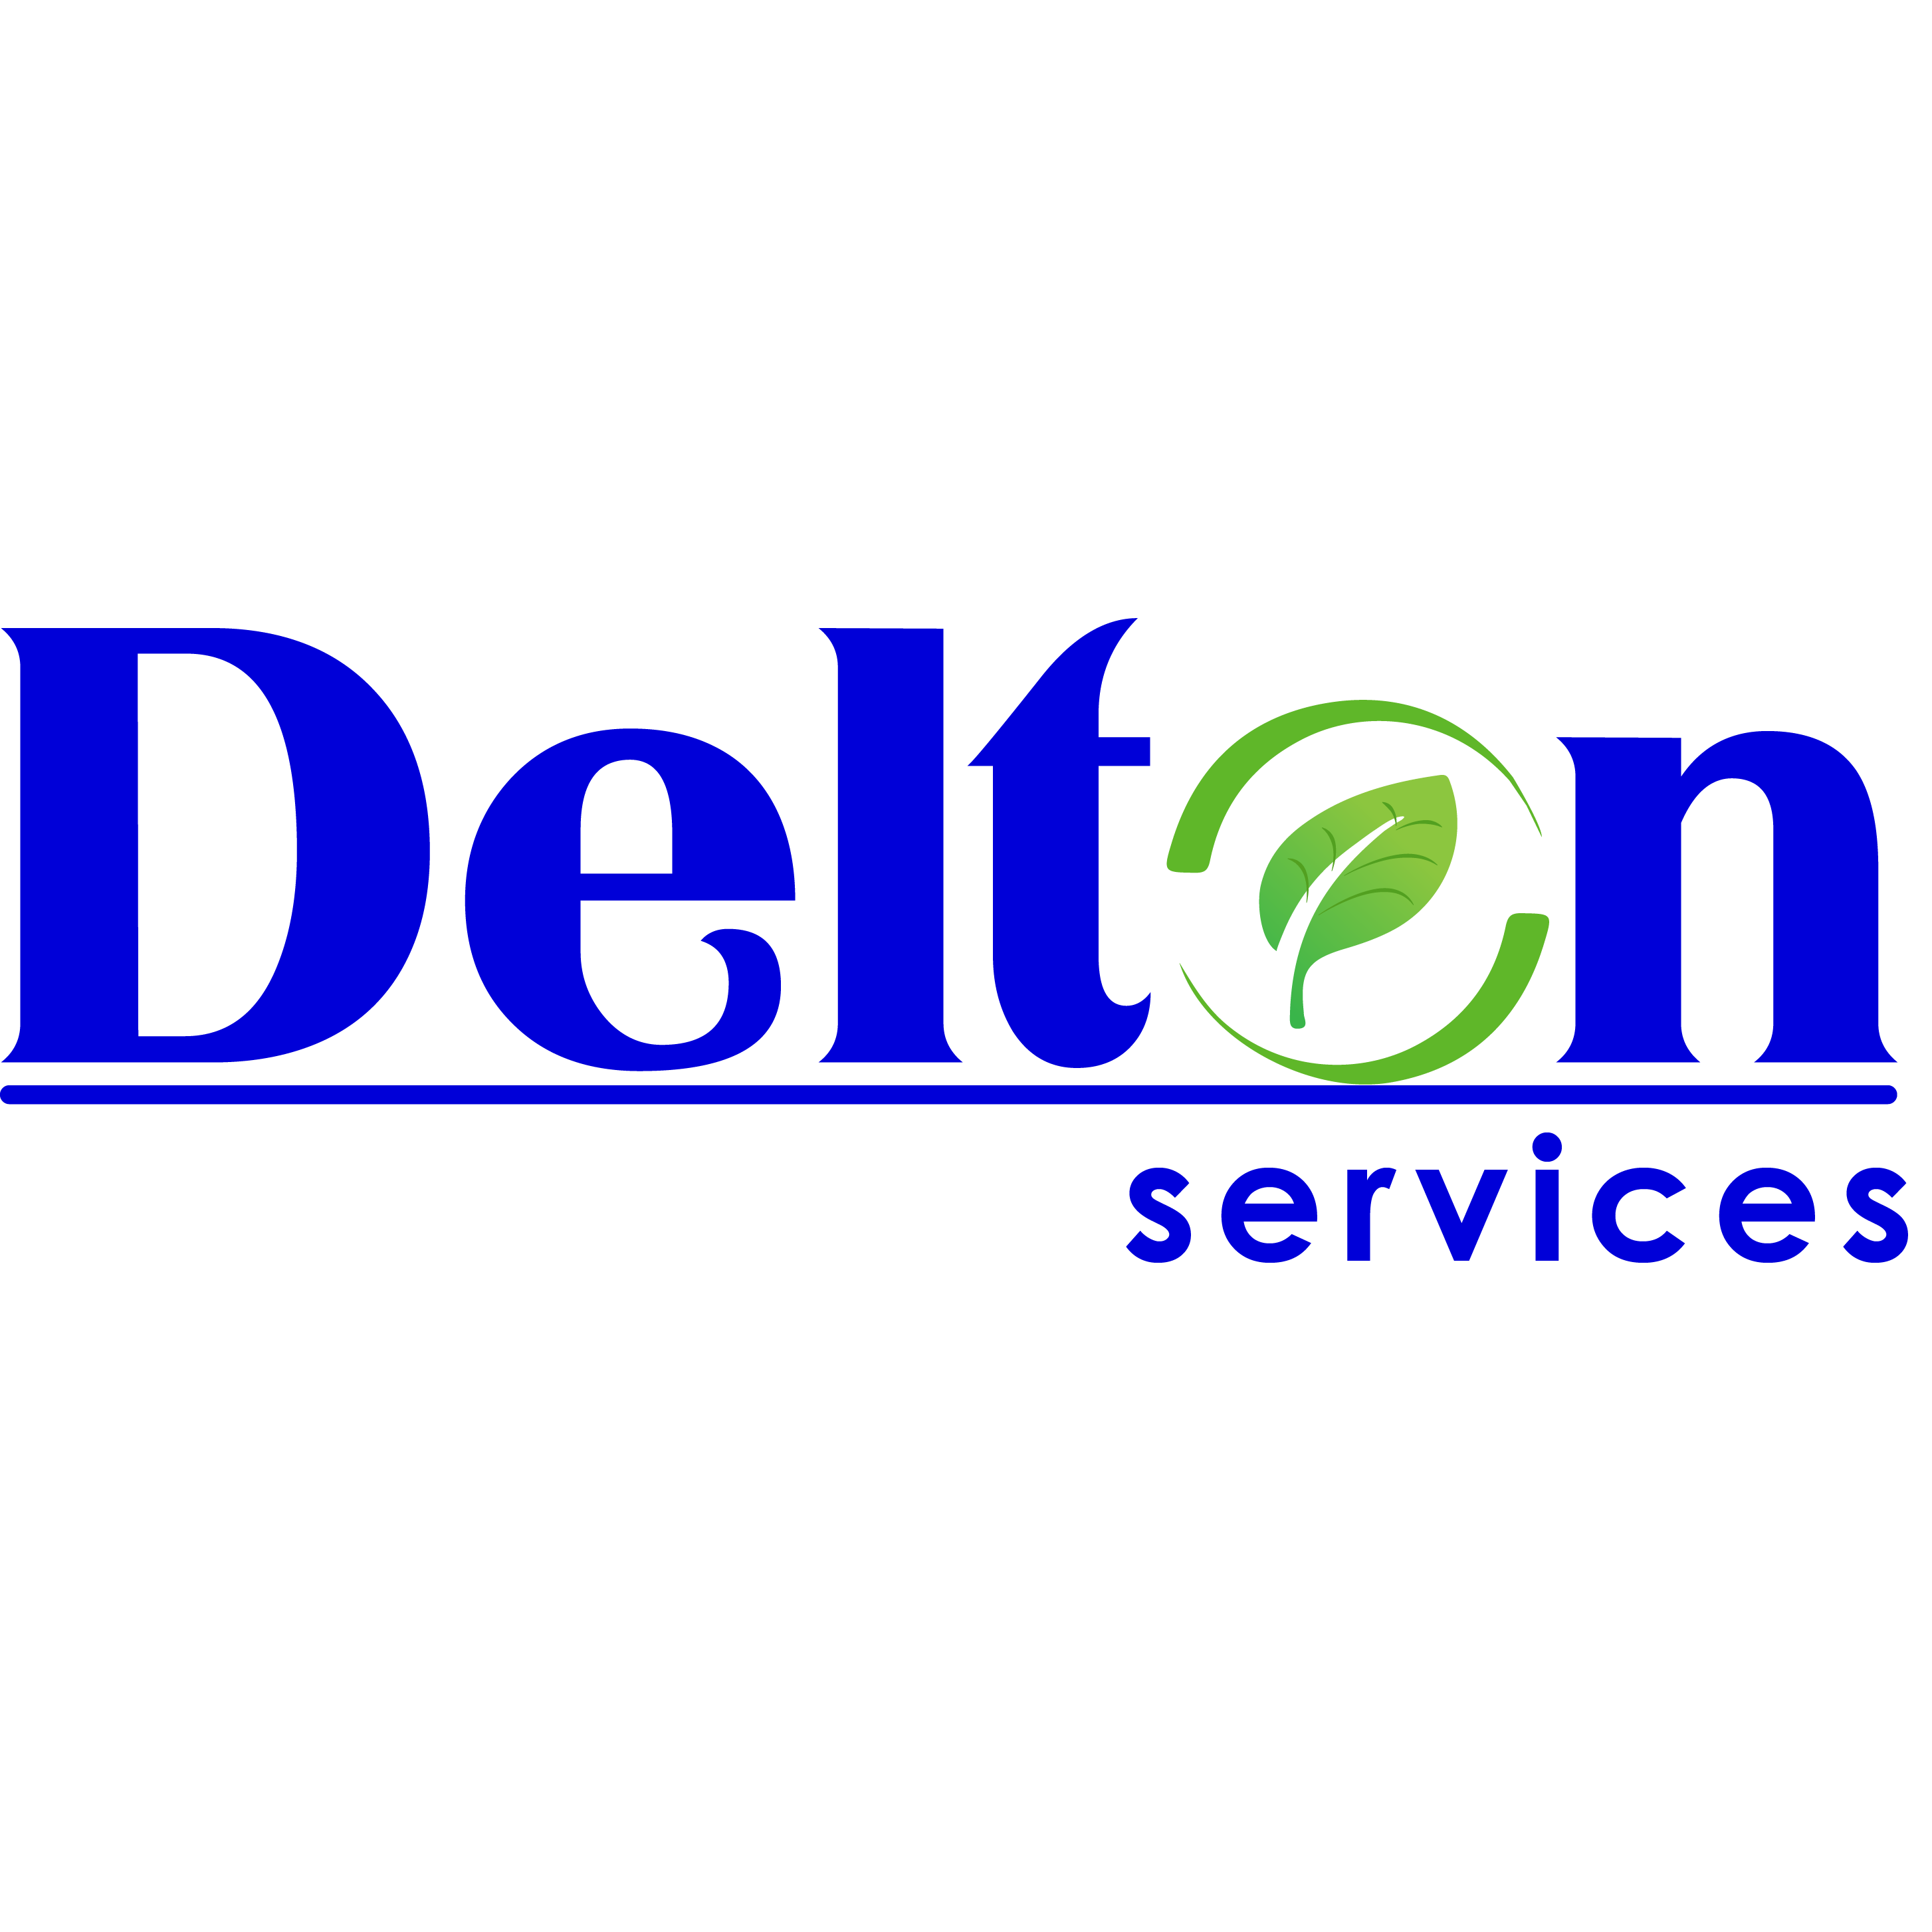 delton single guys You have got to be careful about throwing those compliments around too much to some of the younger guys  alex delton said when  to single out players for.